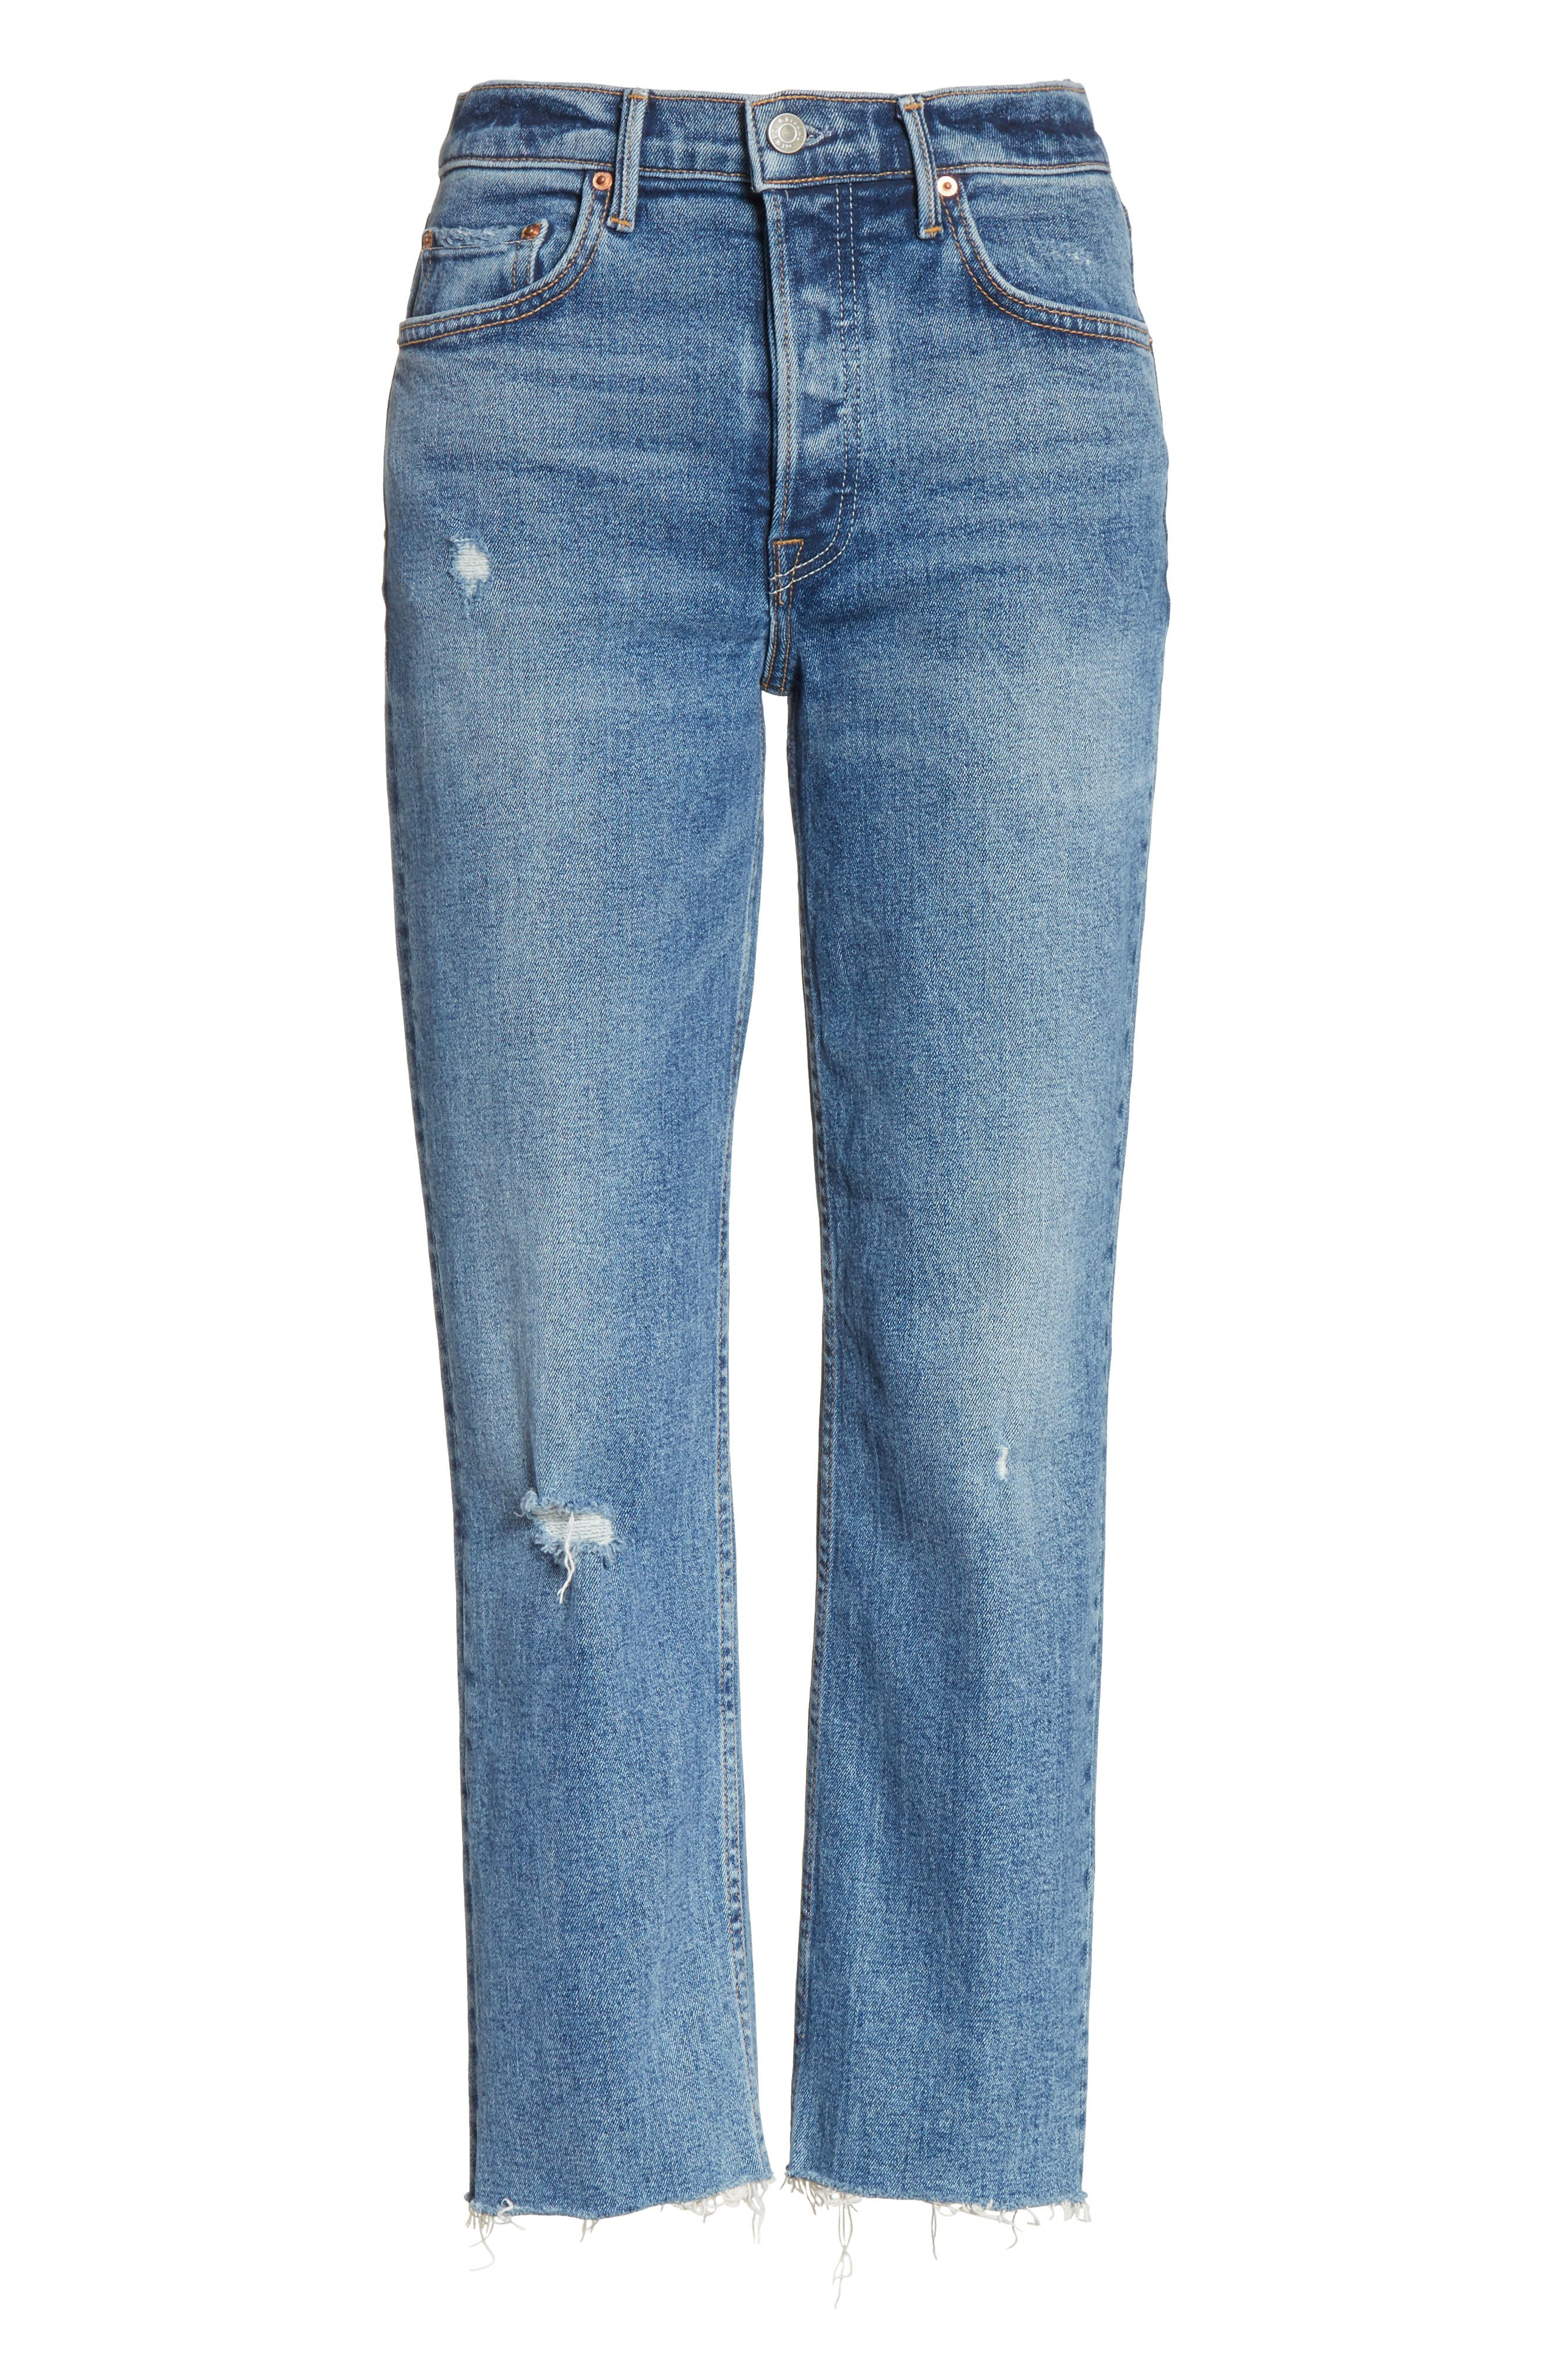 Helena Distressed Rigid High Waist Straight Jeans,                             Alternate thumbnail 6, color,                             SIXPENCE